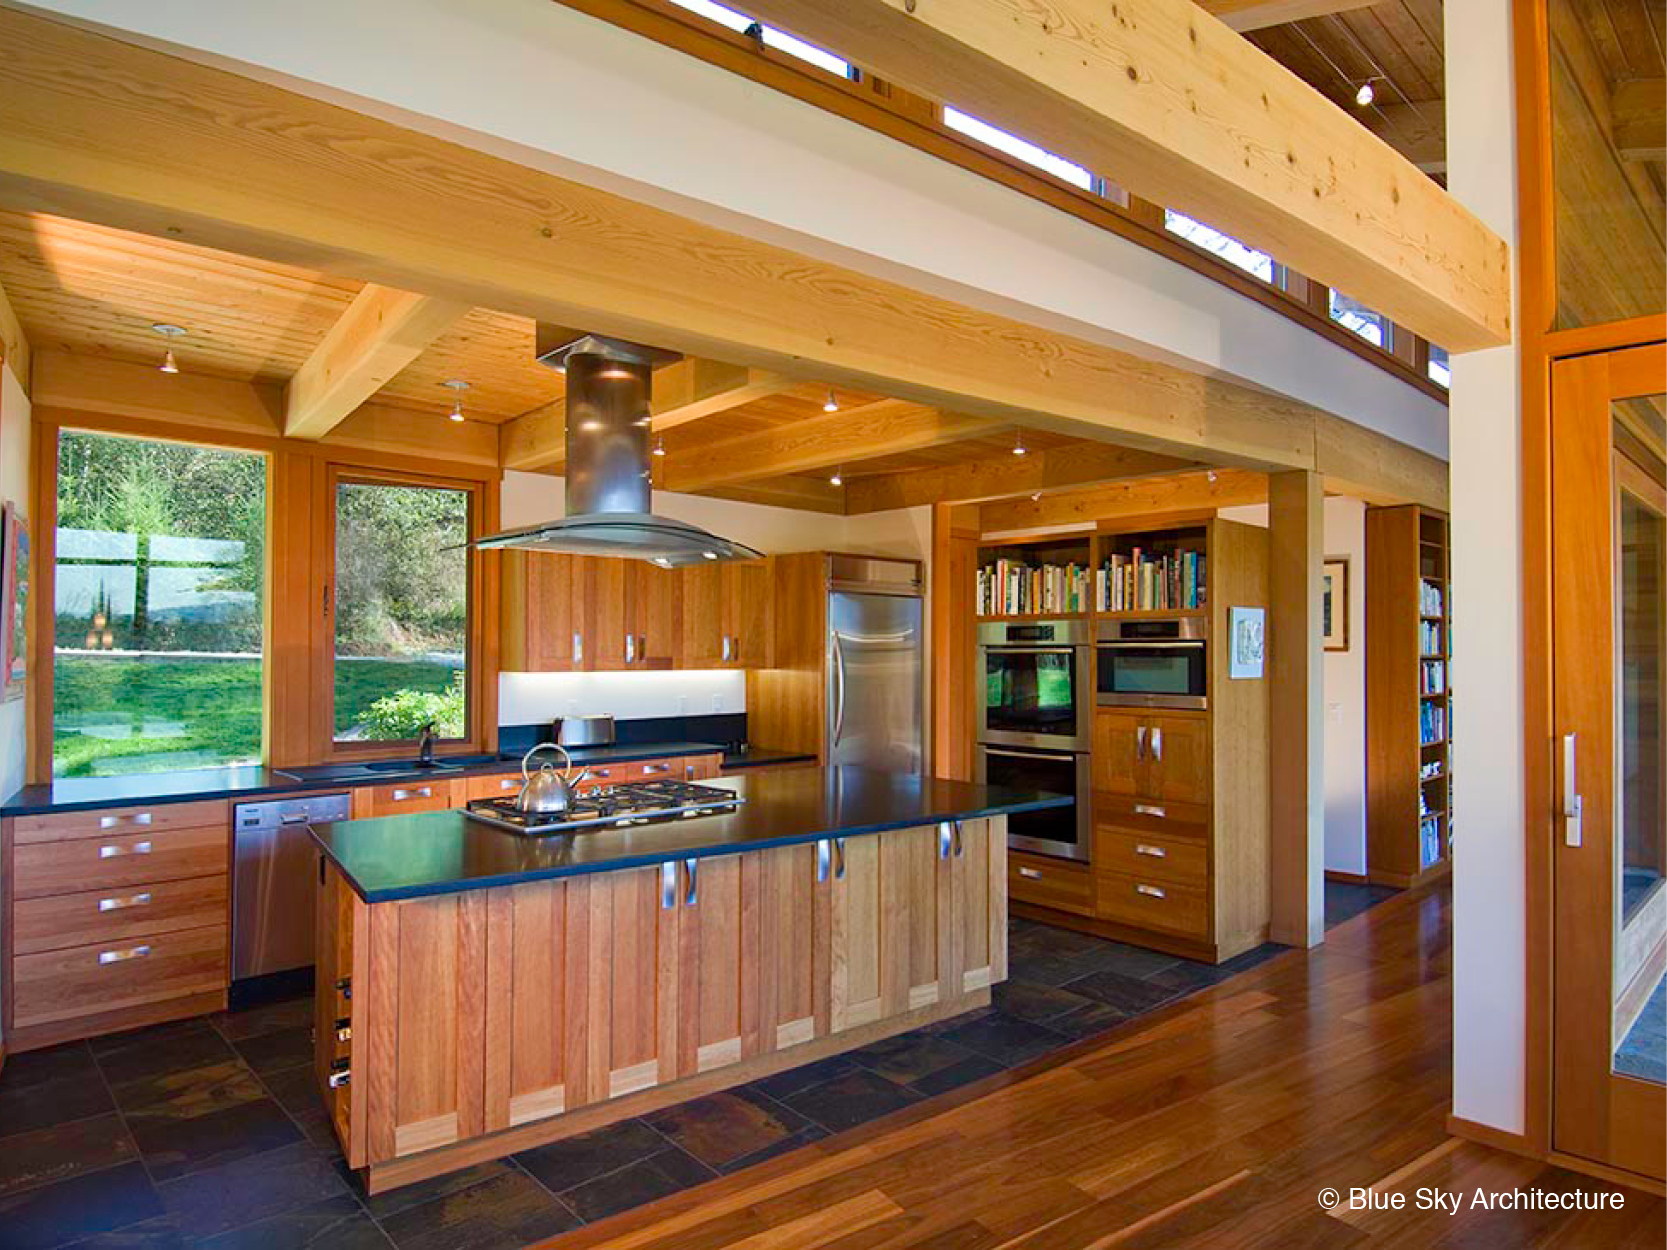 HollyFarm-house-interior-kitchen-wood-material.jpg